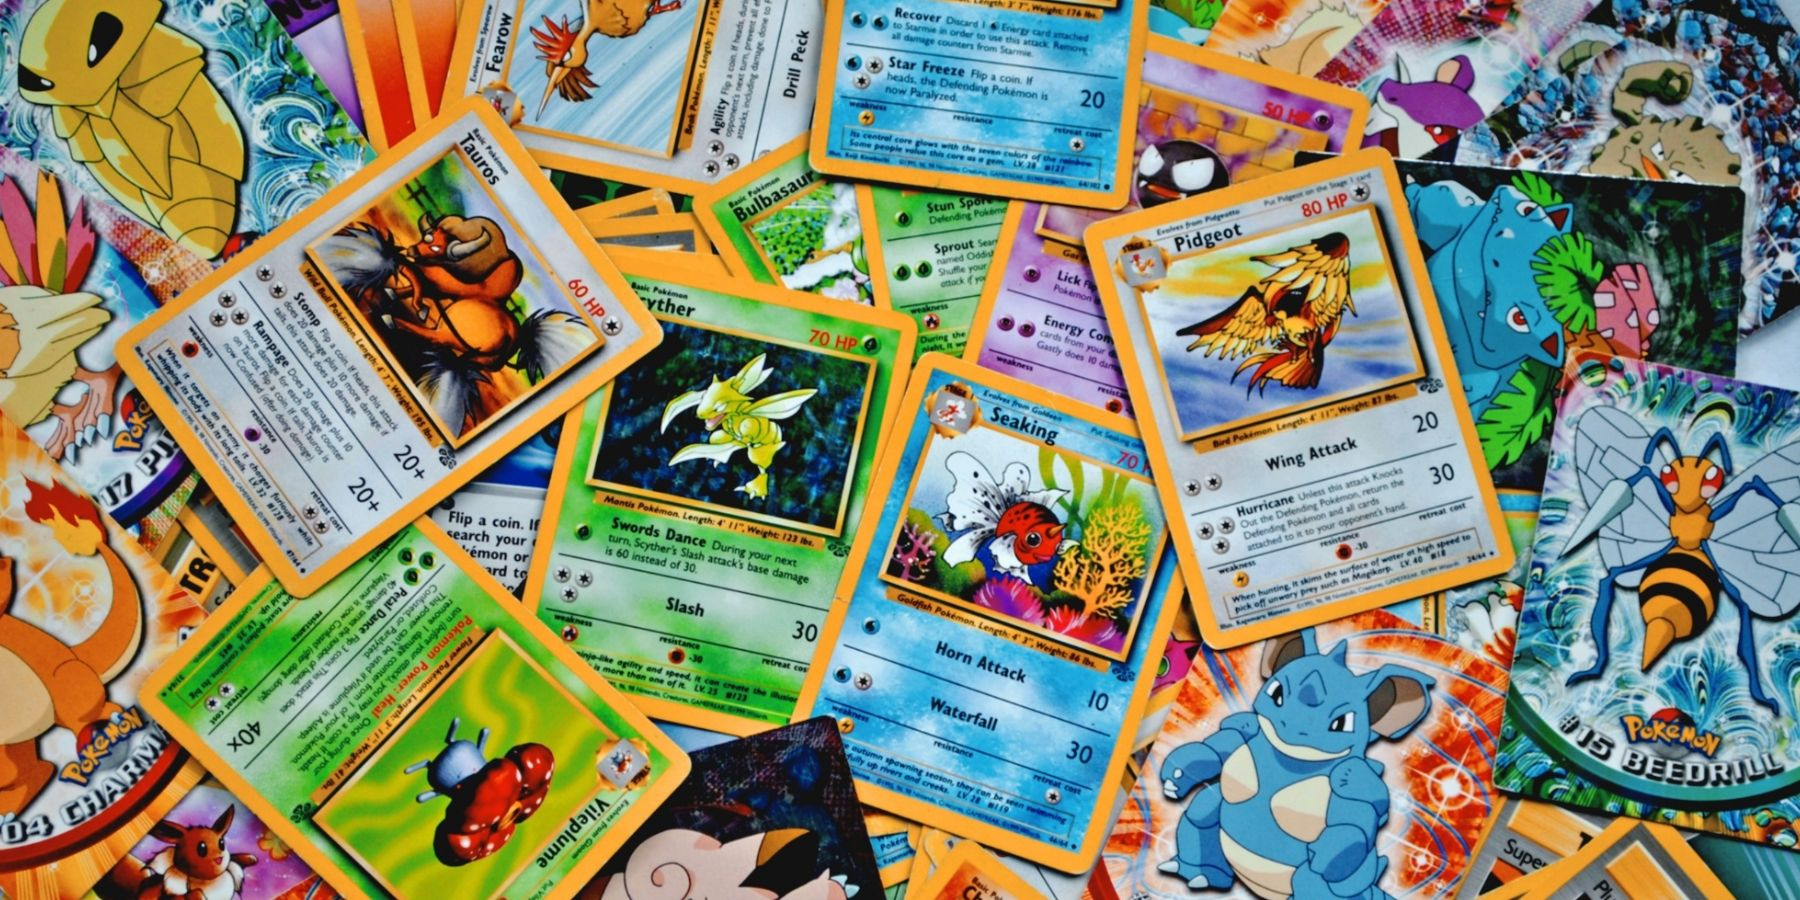 Unopened Box of Pokemon Cards Could Make Over $65k at Auction